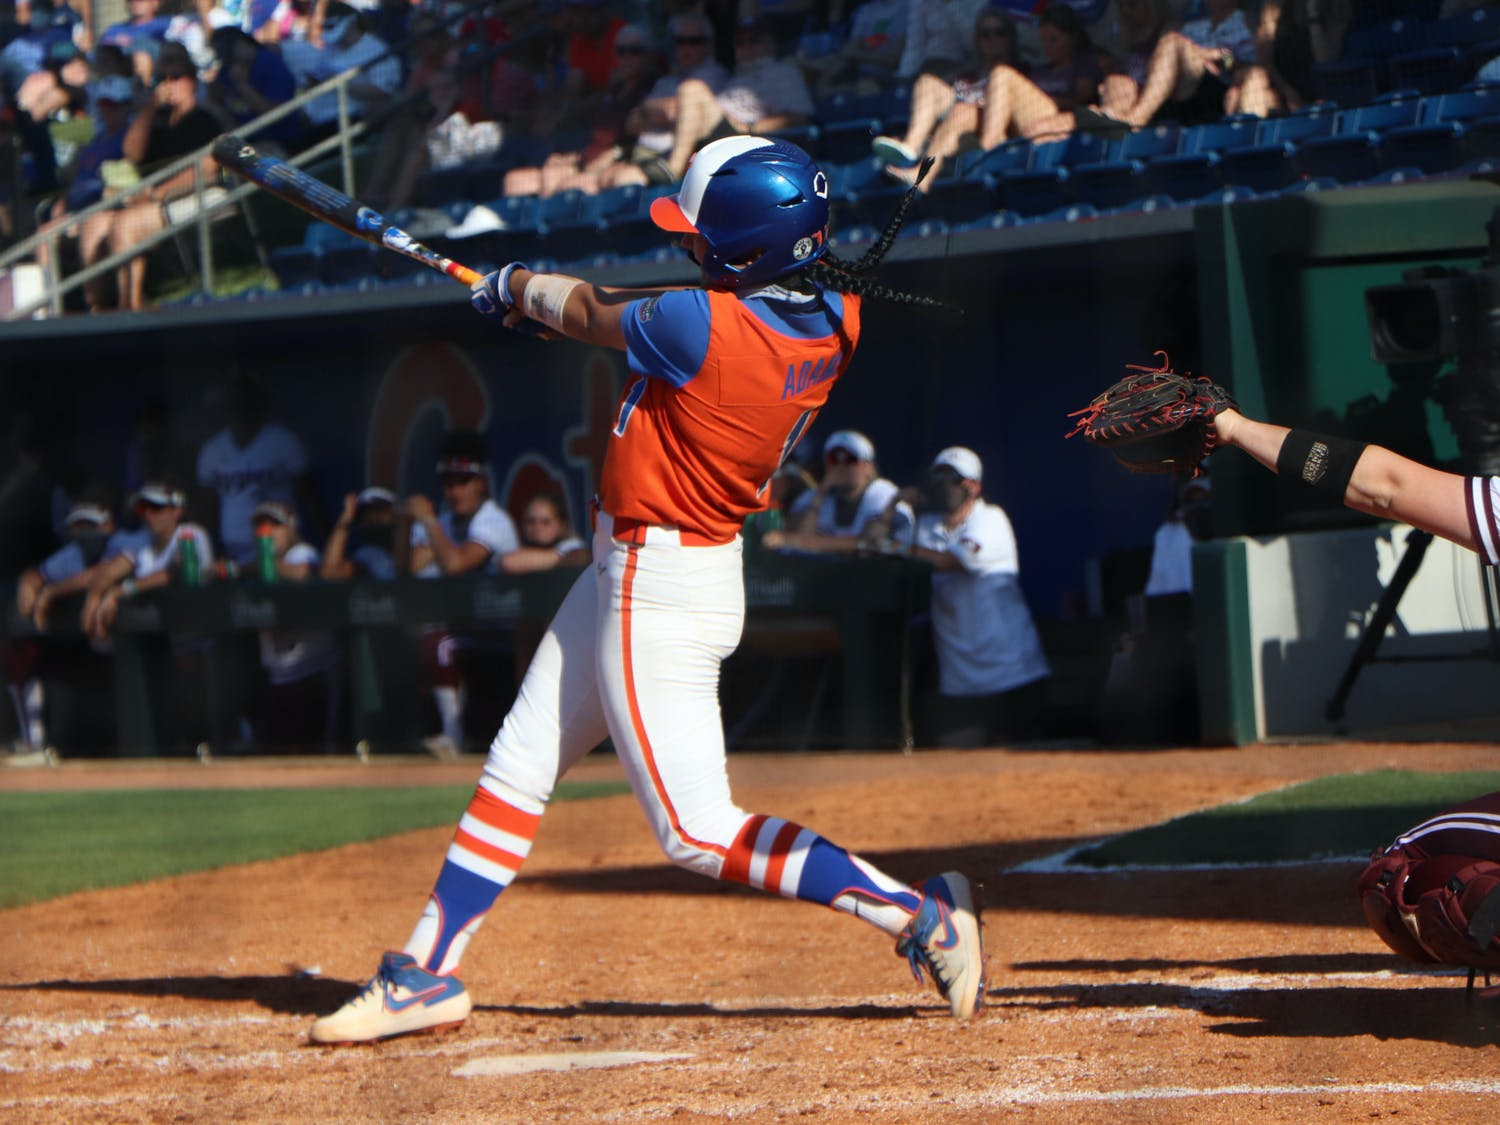 Hannah Adams against Texas A&M on May 8. The Gators fell in the SEC Championship 4-0 to Alabama.